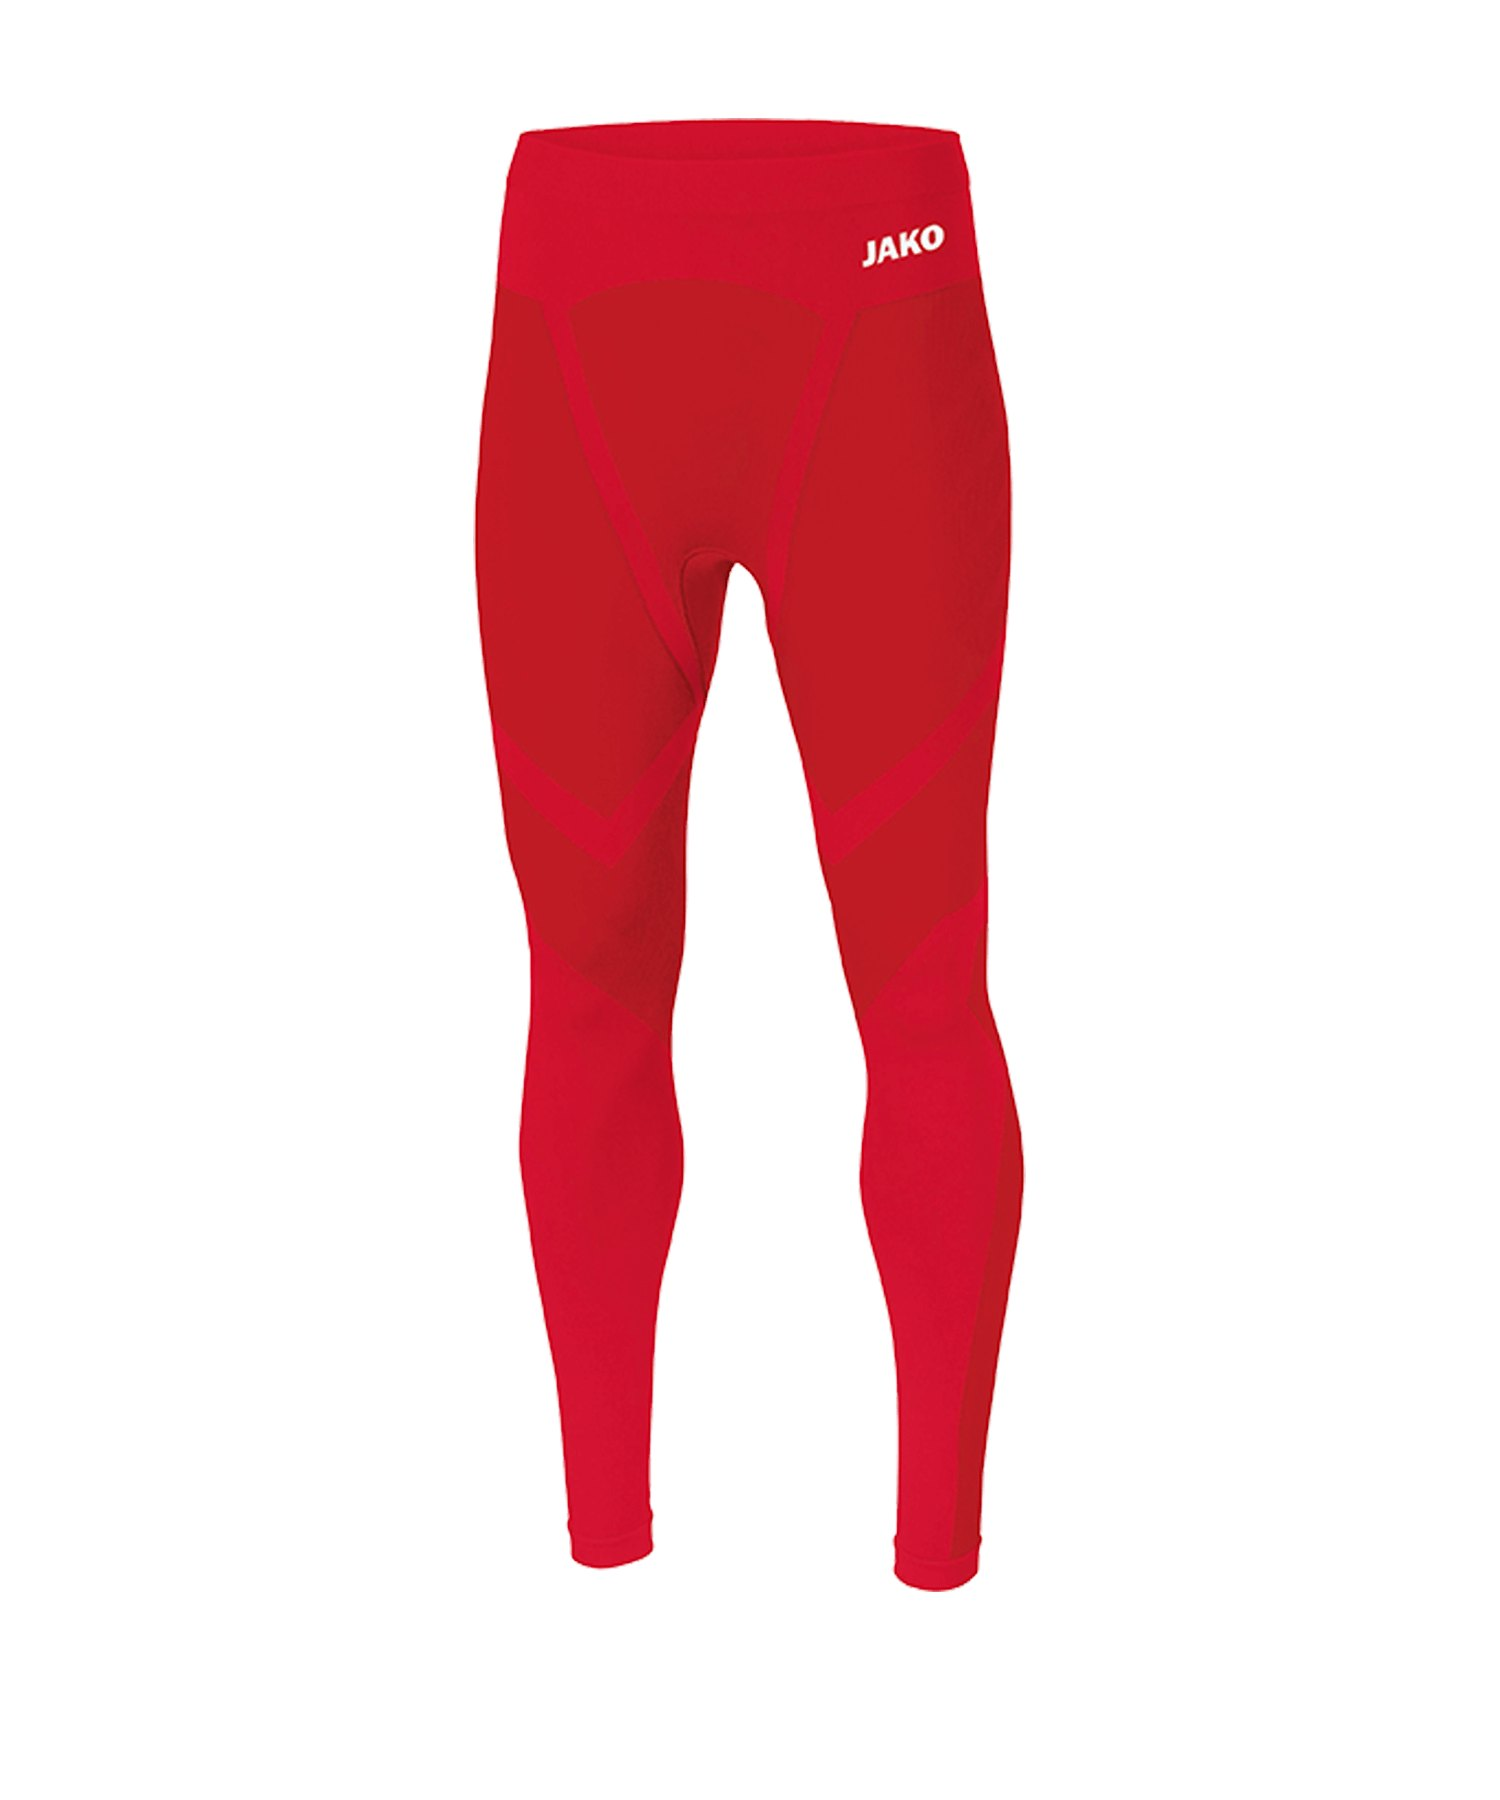 JAKO Comfort 2.0 Long Tight Rot F01 - rot